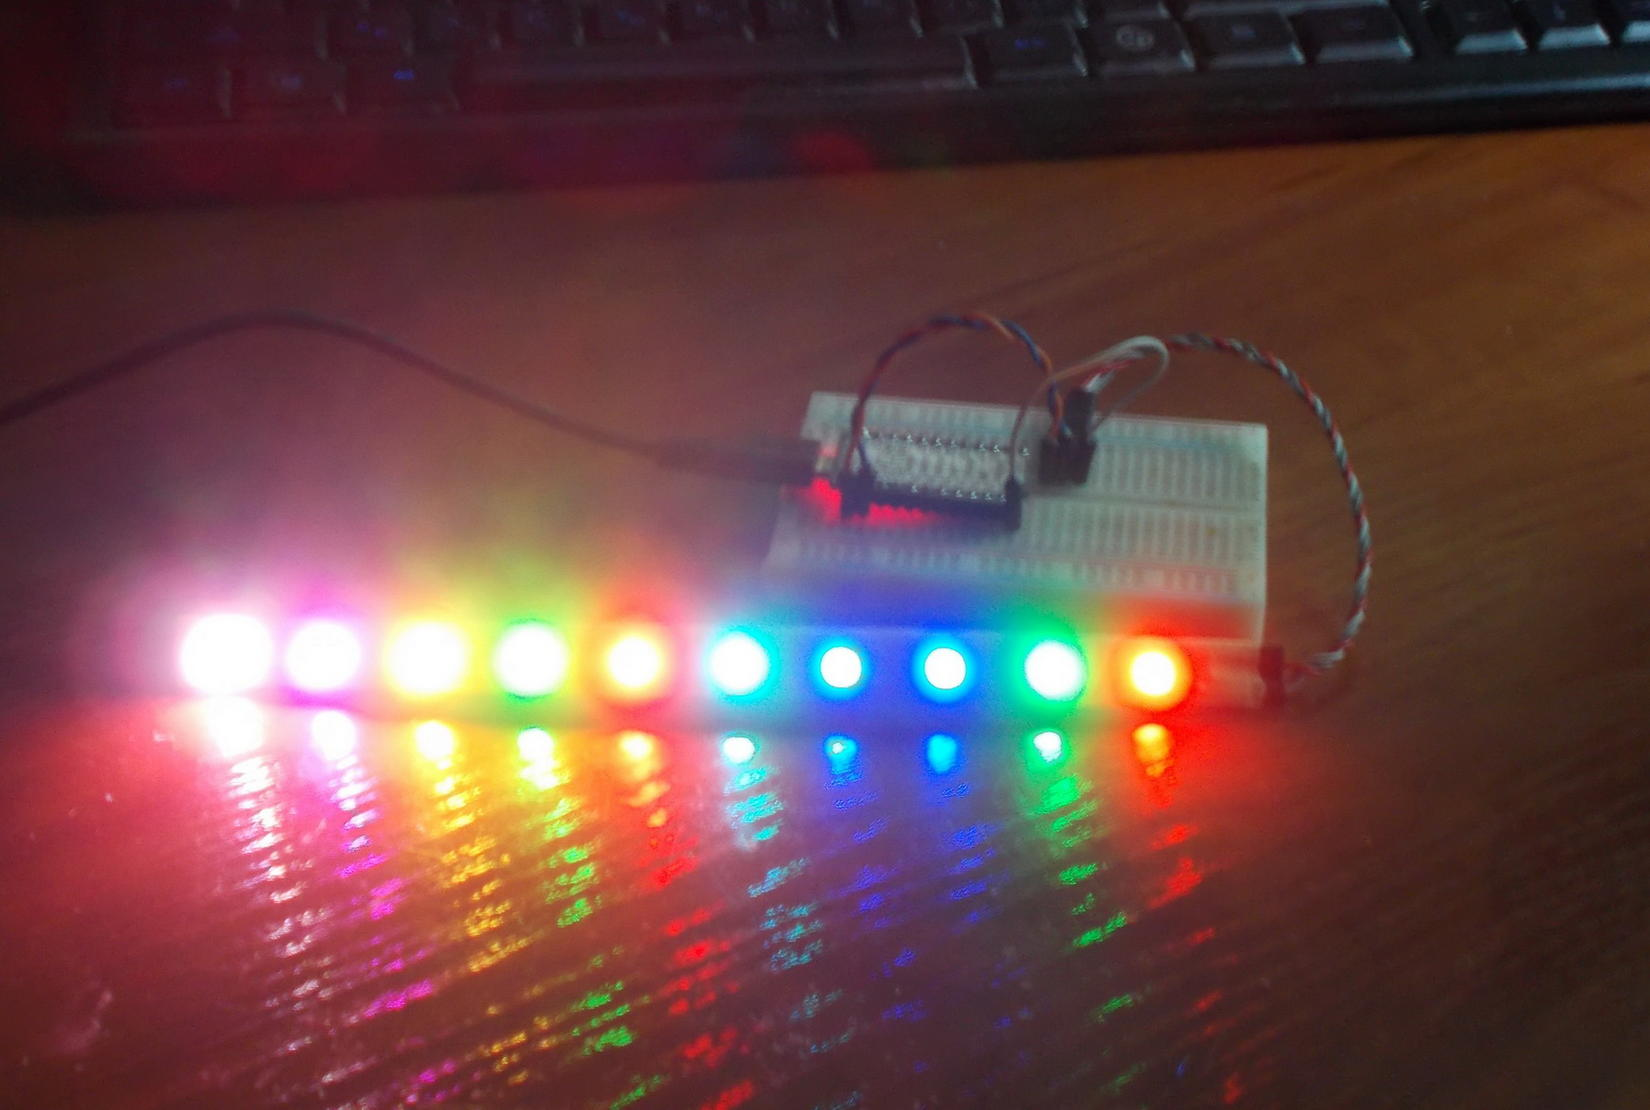 Mmjoy Mmjoy2 Build Your Own Usb Controller Simhq Forums Thread How To Wire A Rotary Switch With Leo Bu0836x Board Rgb Led Strip Ws2811 Each Have Individual Digital Address Set Any Color 3 Connection Power Ground And Control